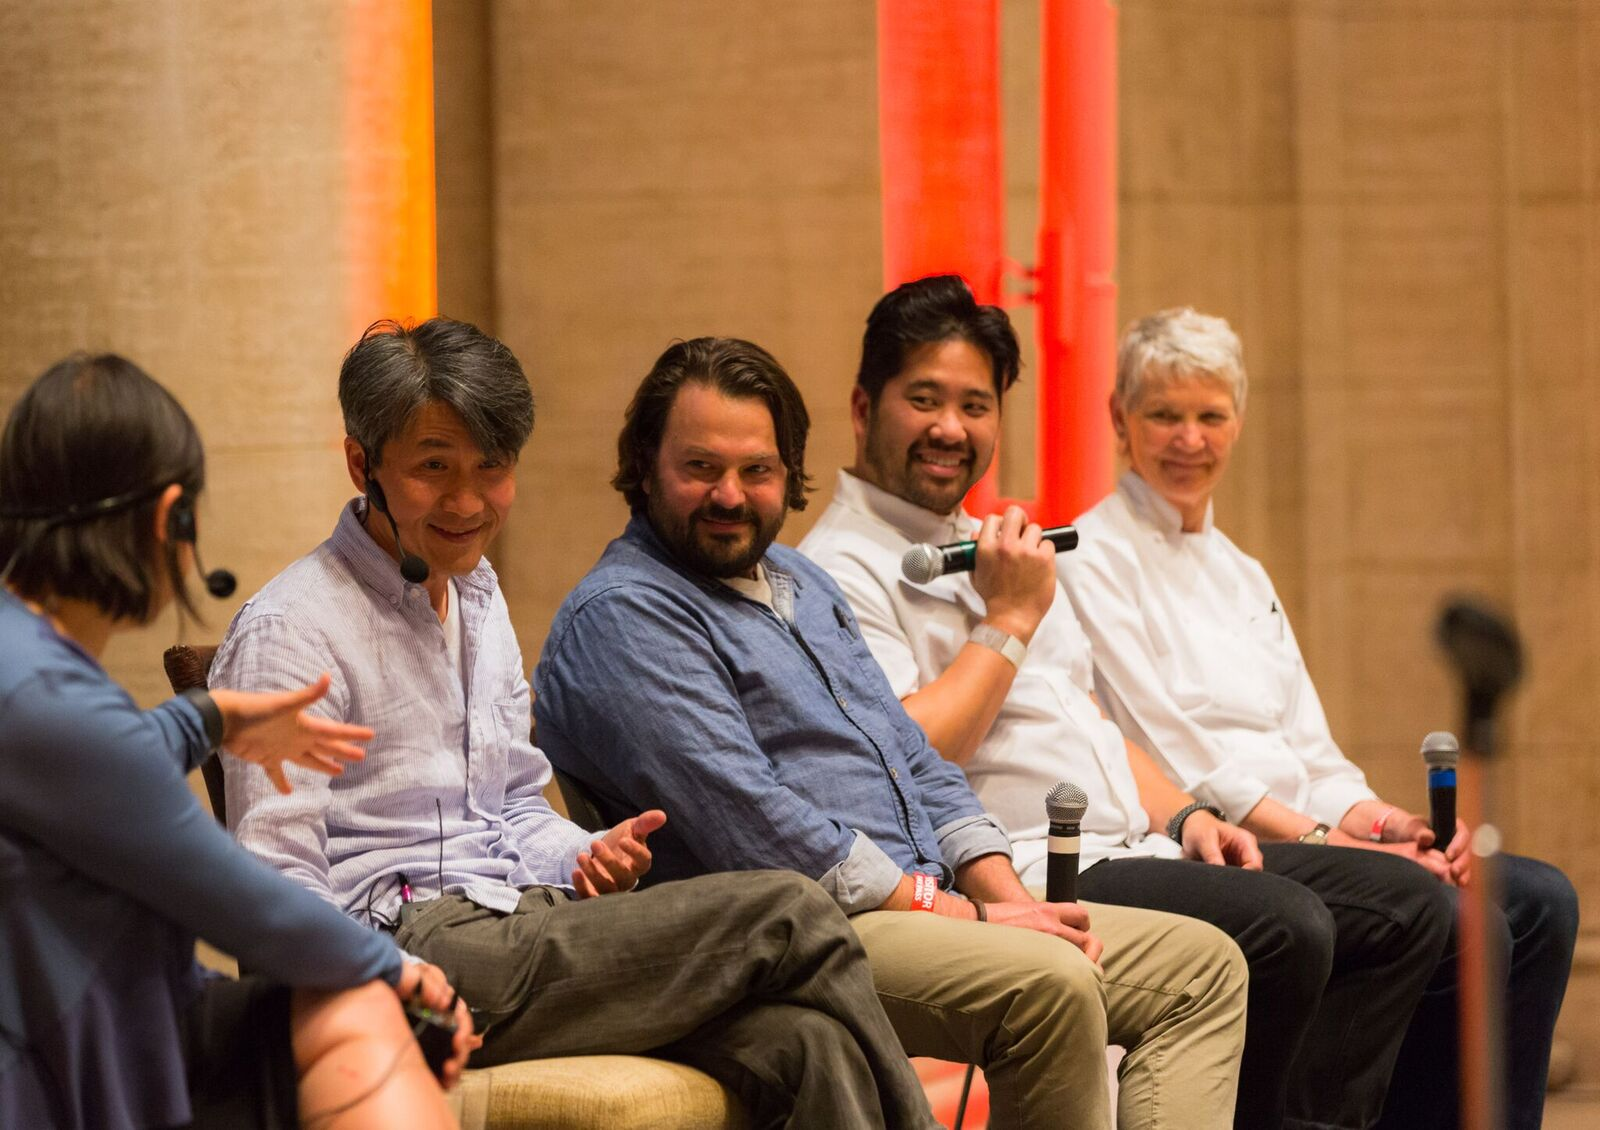 Jennifer 8. Lee moderated the discussion between Minh Tsai, Stuart, Brioza, Brandon Jew and Annie Somerville.